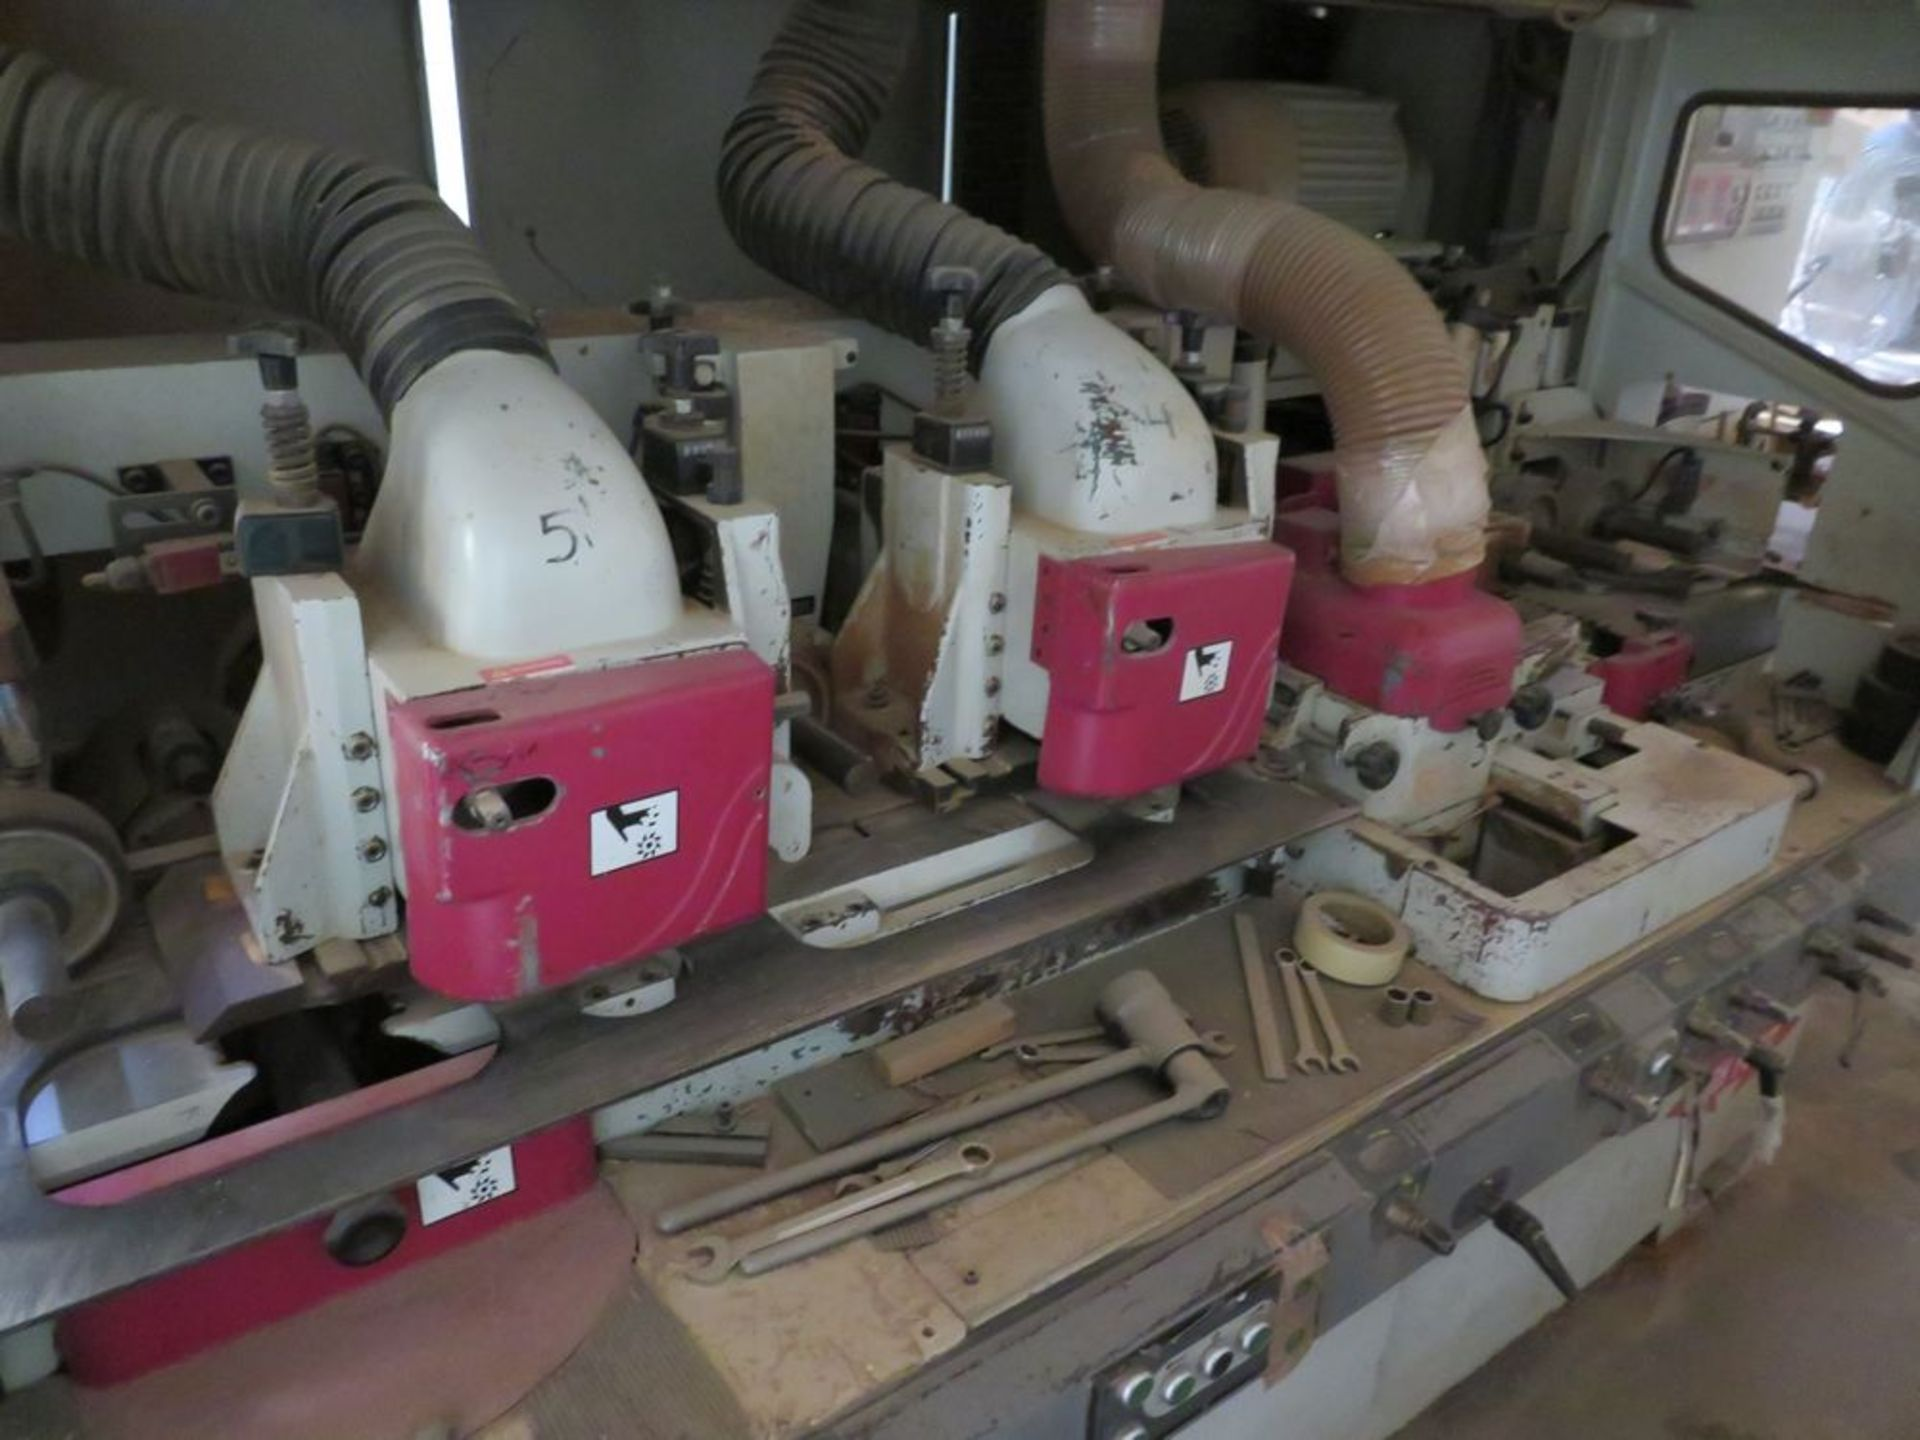 Lot 15 - (2010) Hinoki Moulder, 6-Head Upgraded to 15hp Motor, Semi-Automatic Adjustment to Width & Height